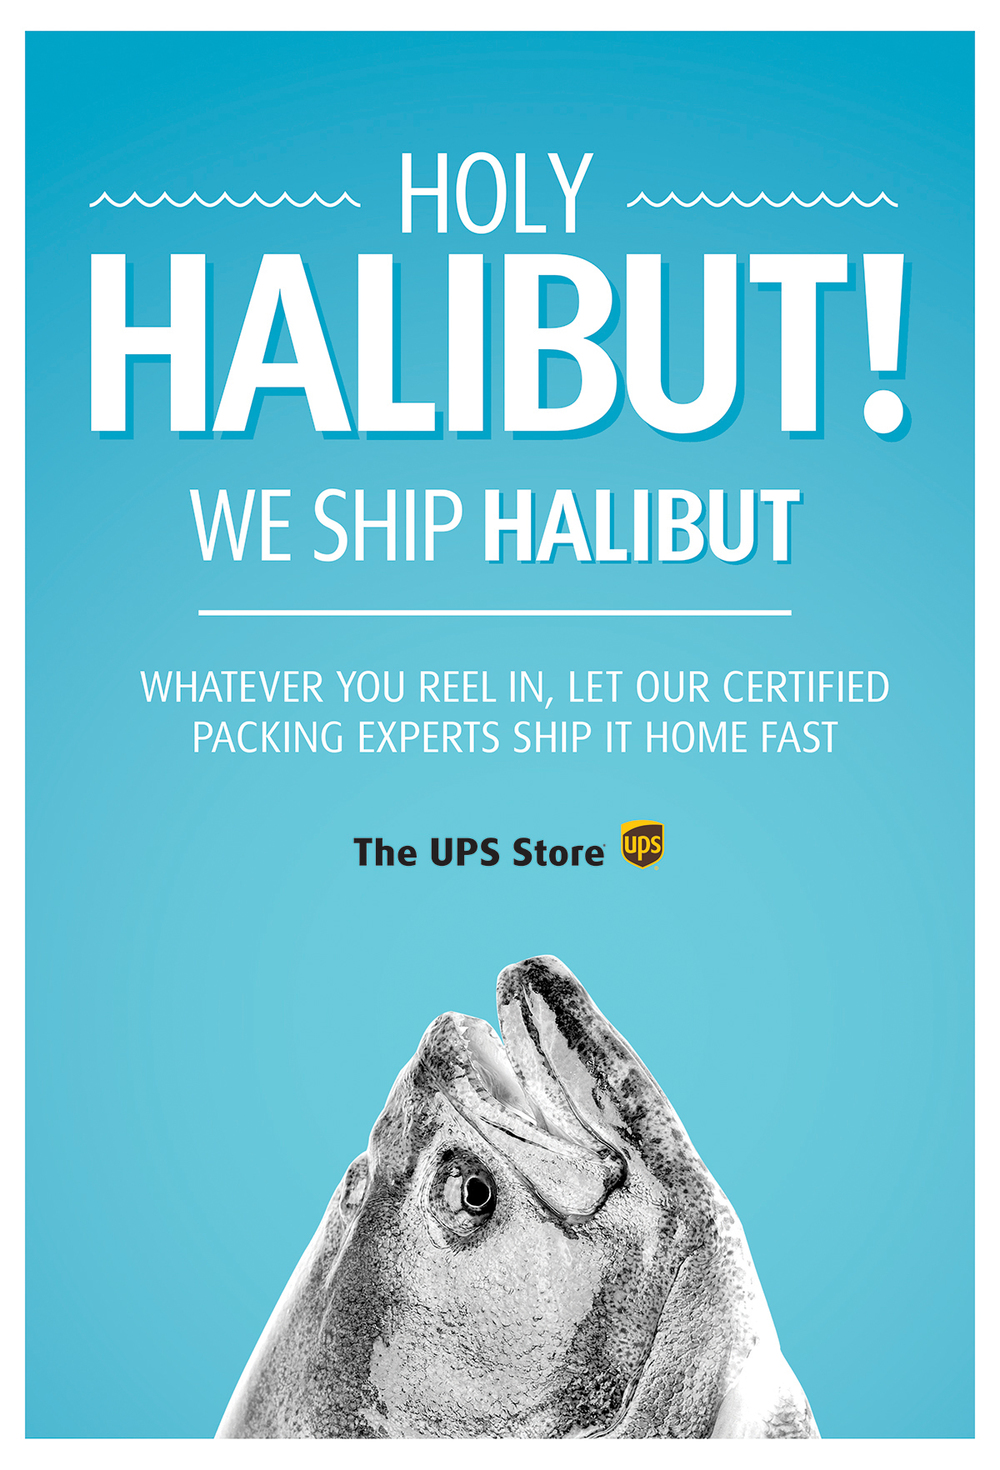 The ups store fish basketball toys ken spera halibutposterg reheart Choice Image